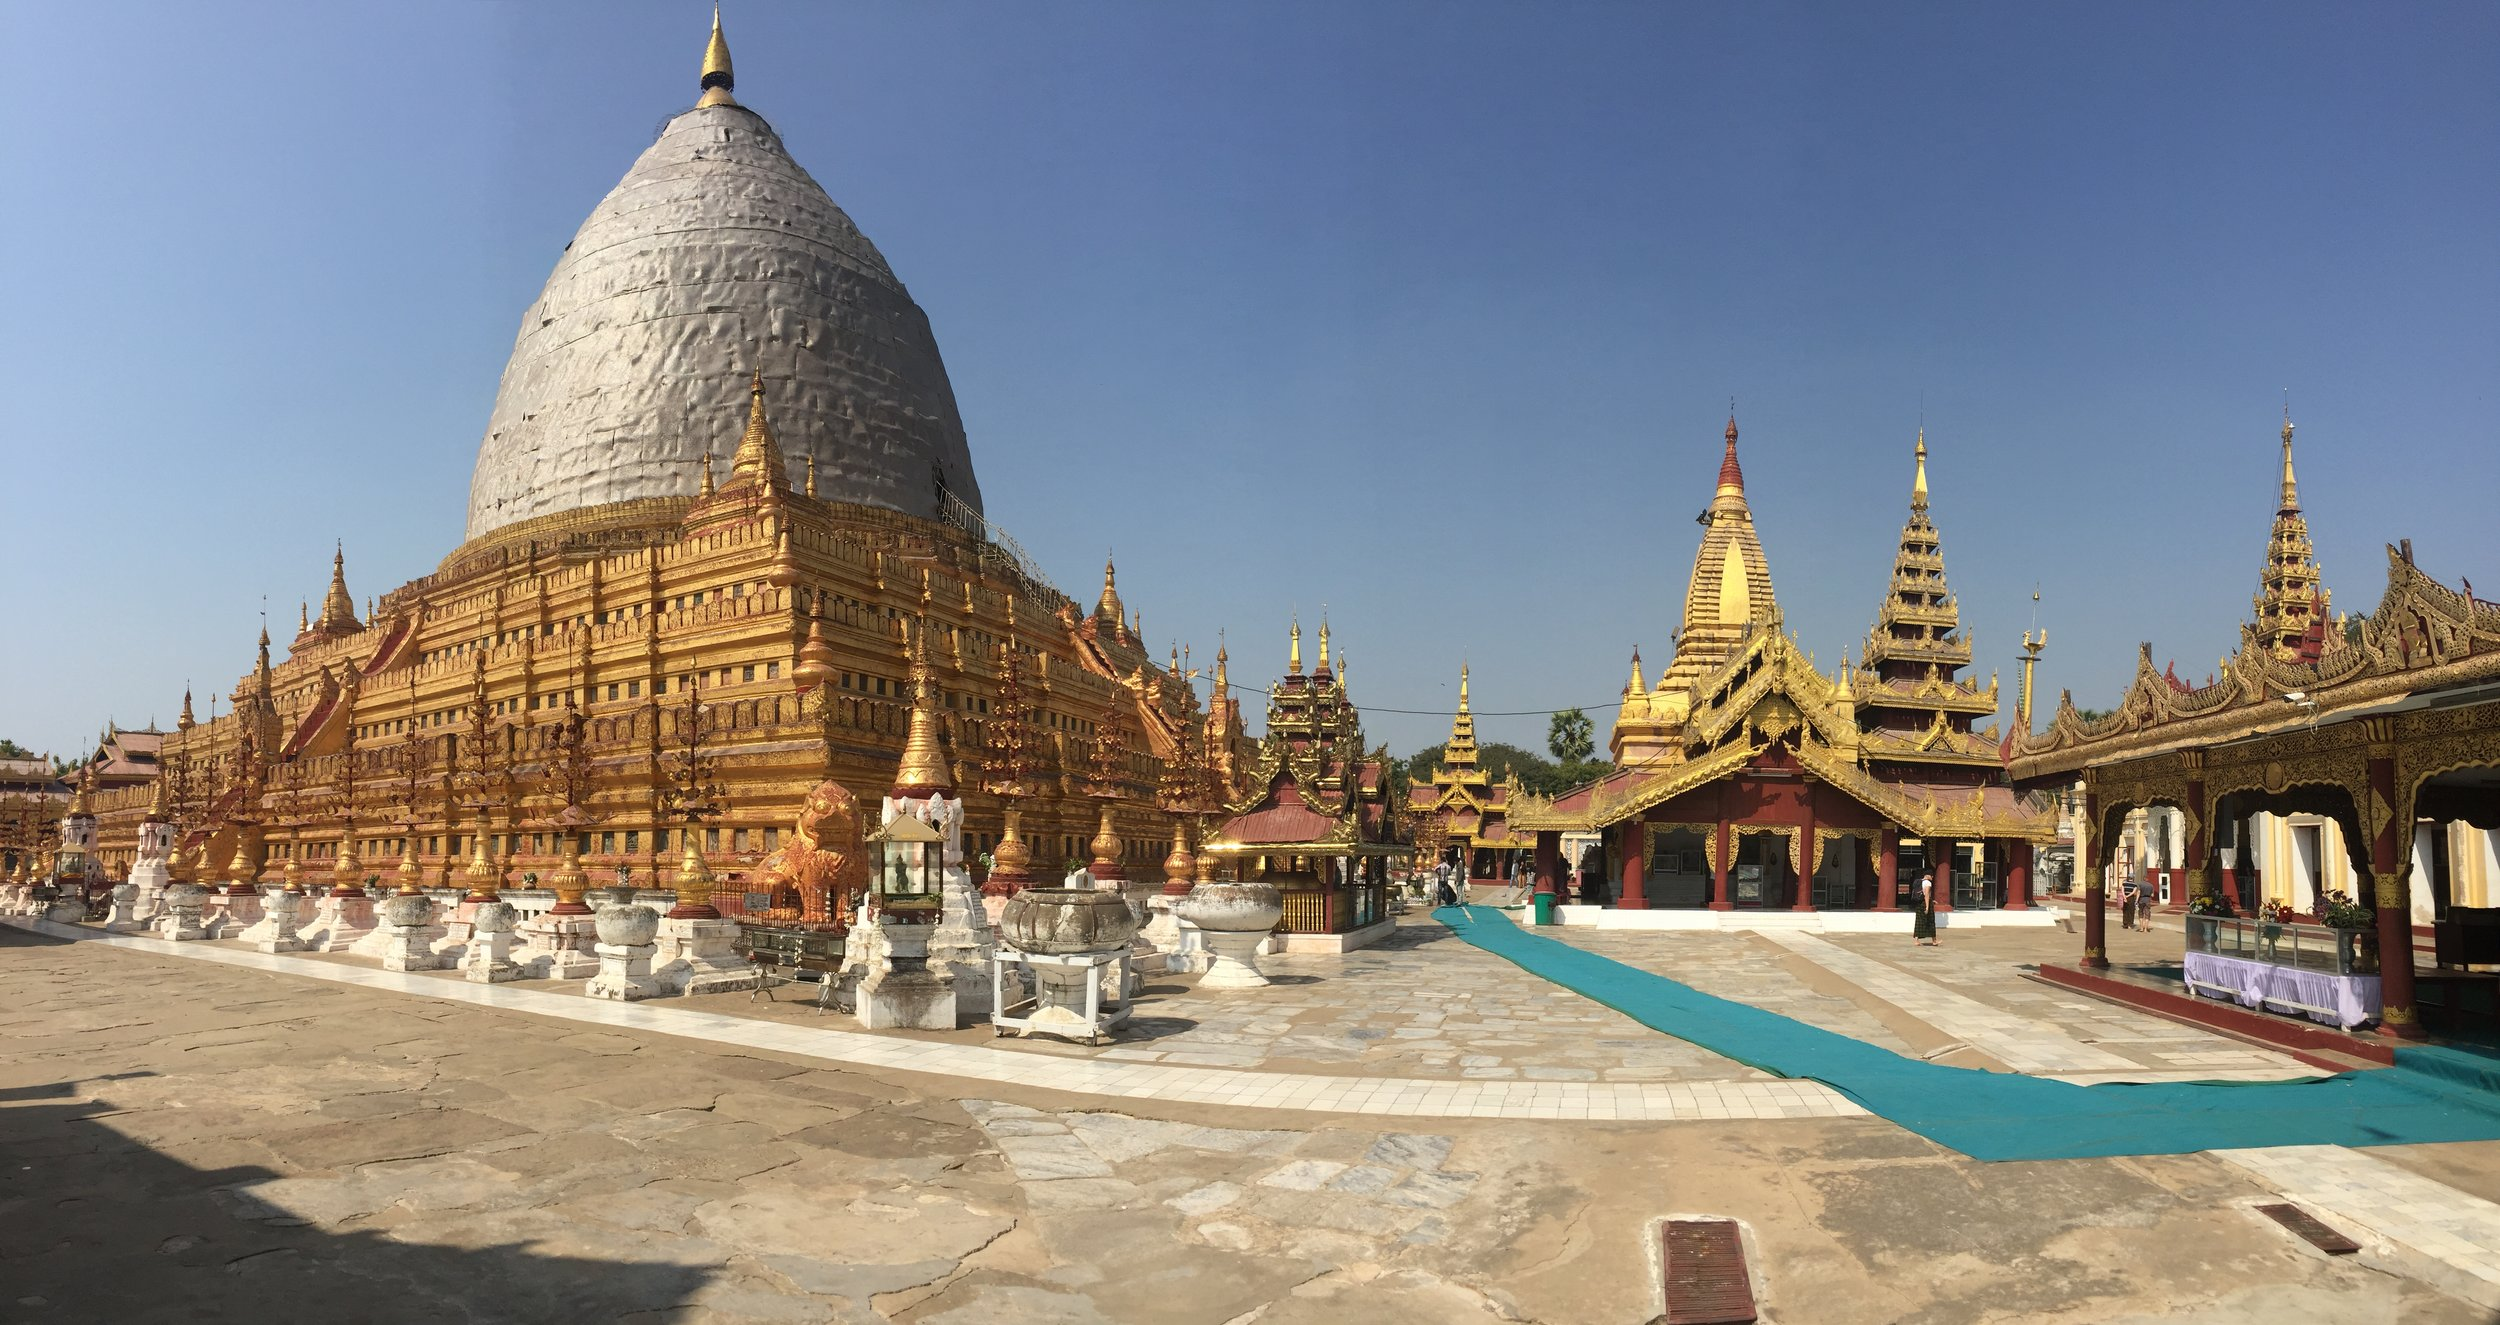 Shwezigon Pagoda, our first stop on the temple tour of Bagan.